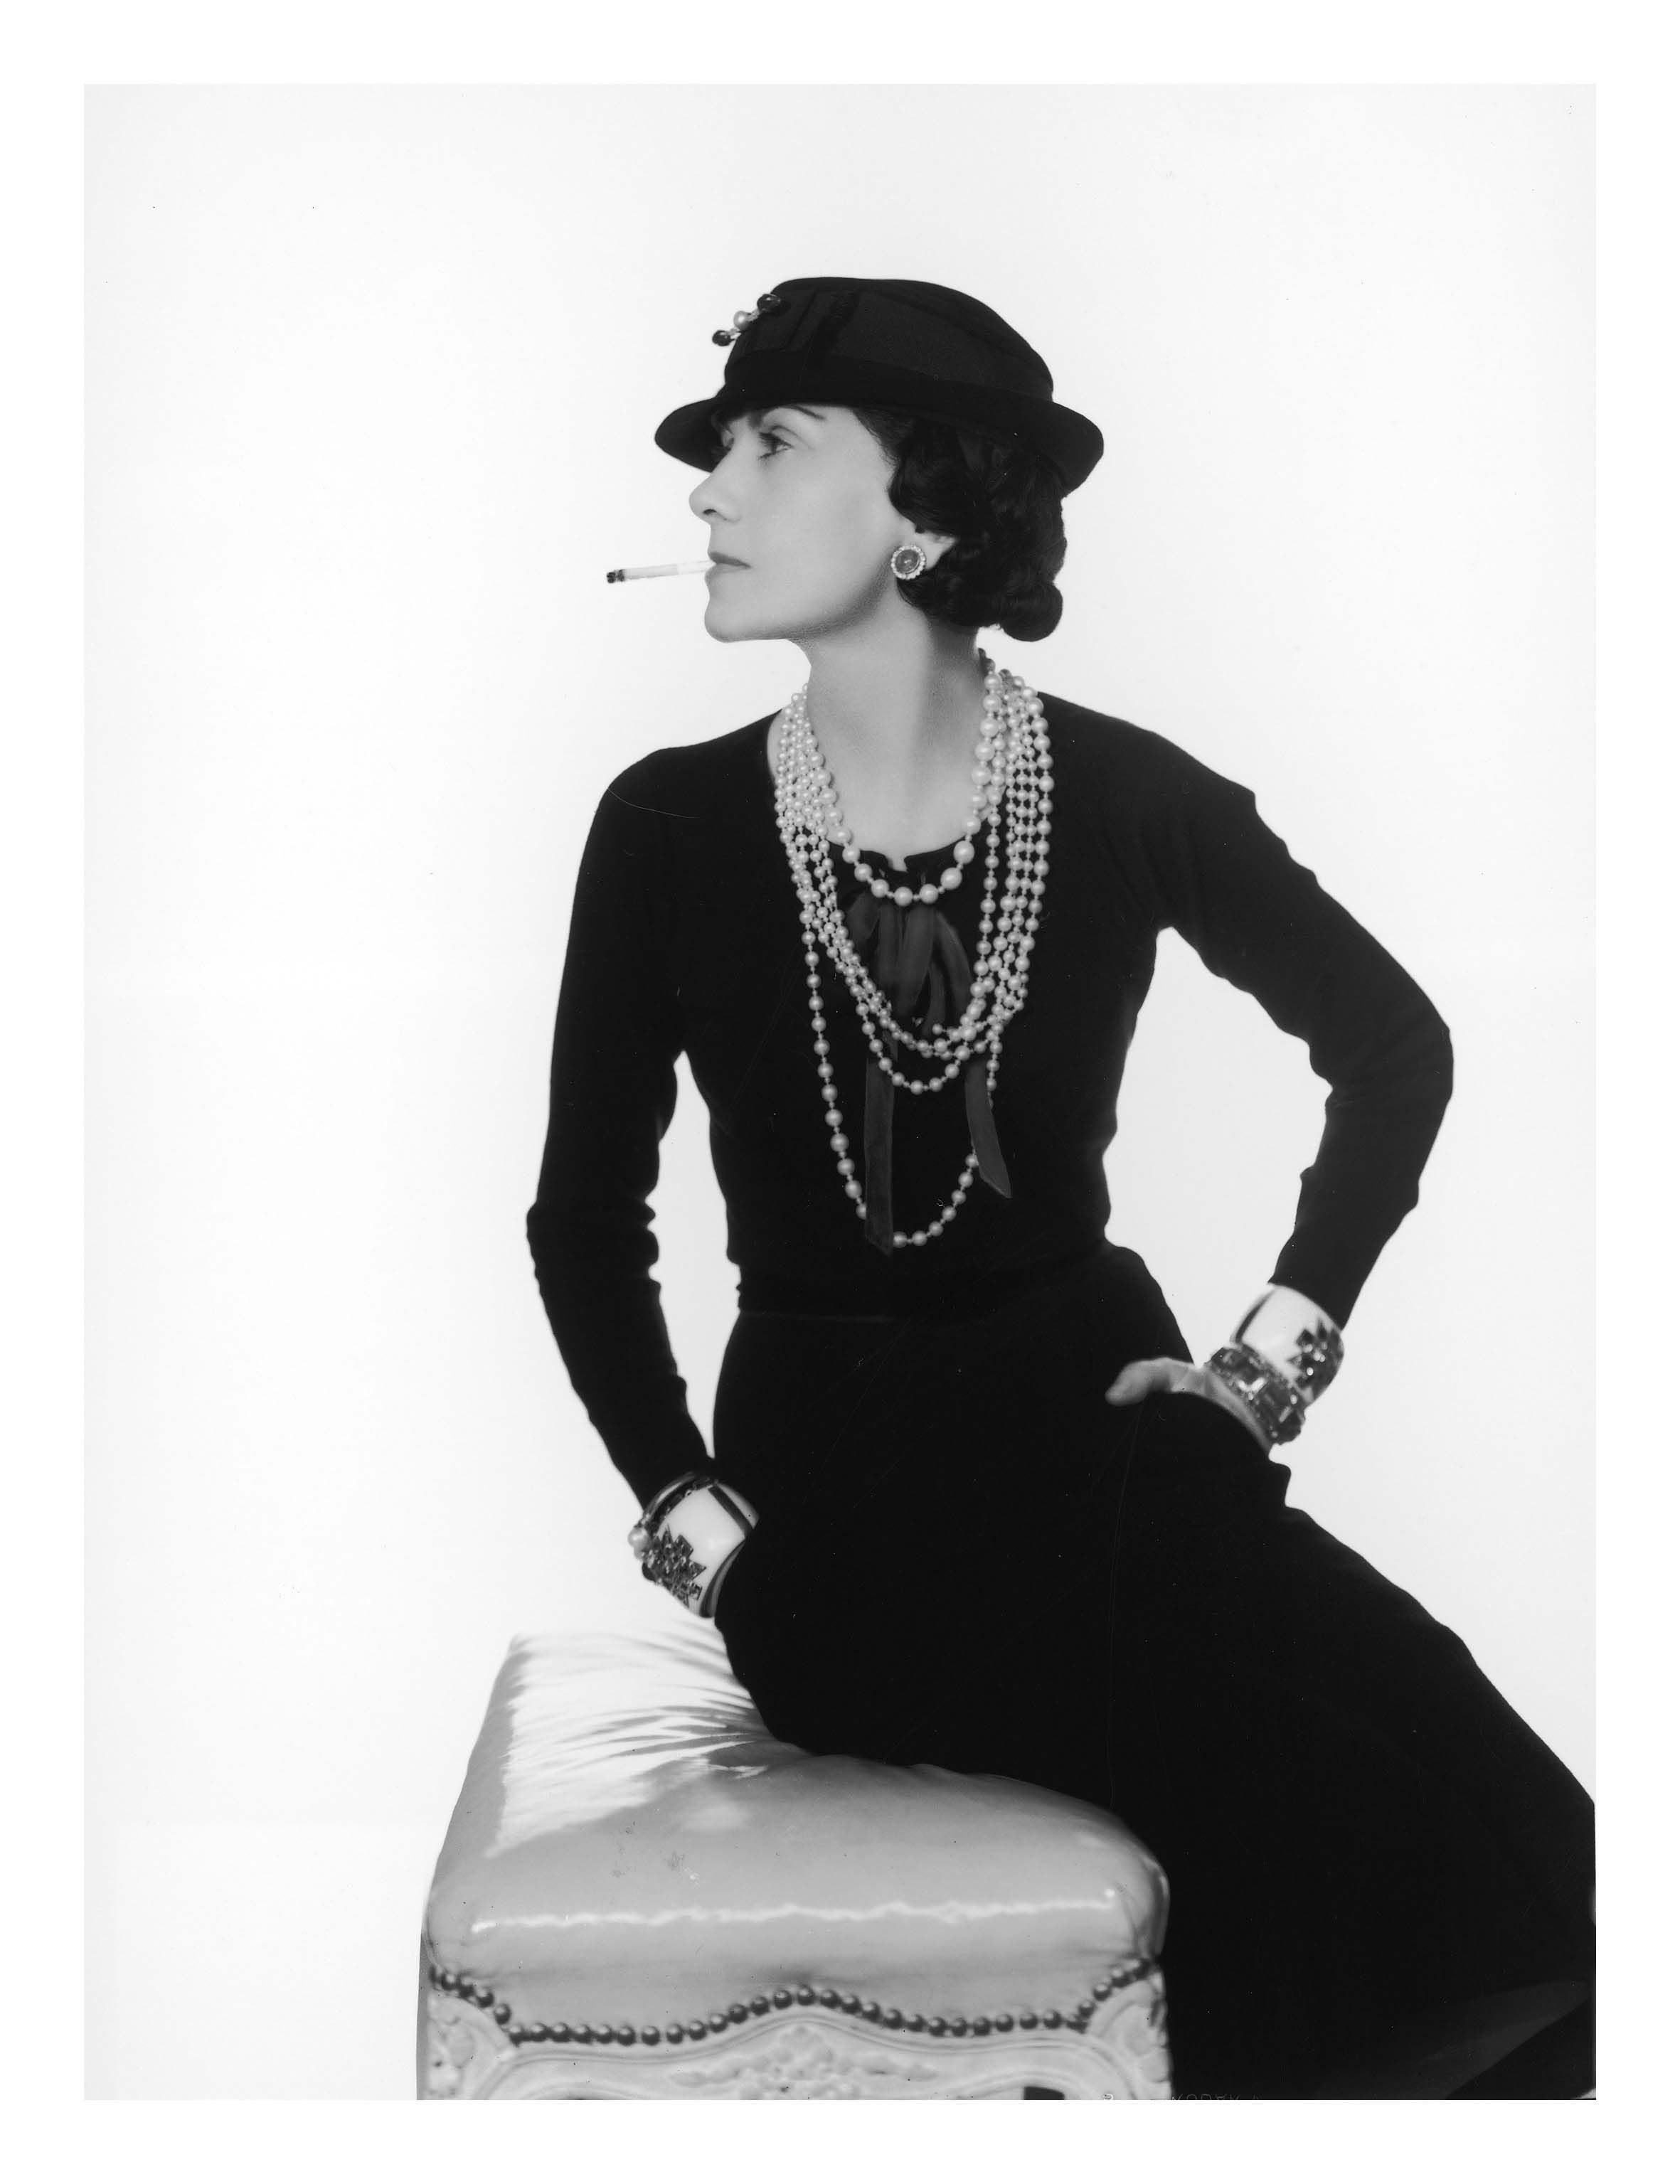 gabrielle coco chanel fotos y citas im genes femme fatals pinterest sch ner. Black Bedroom Furniture Sets. Home Design Ideas